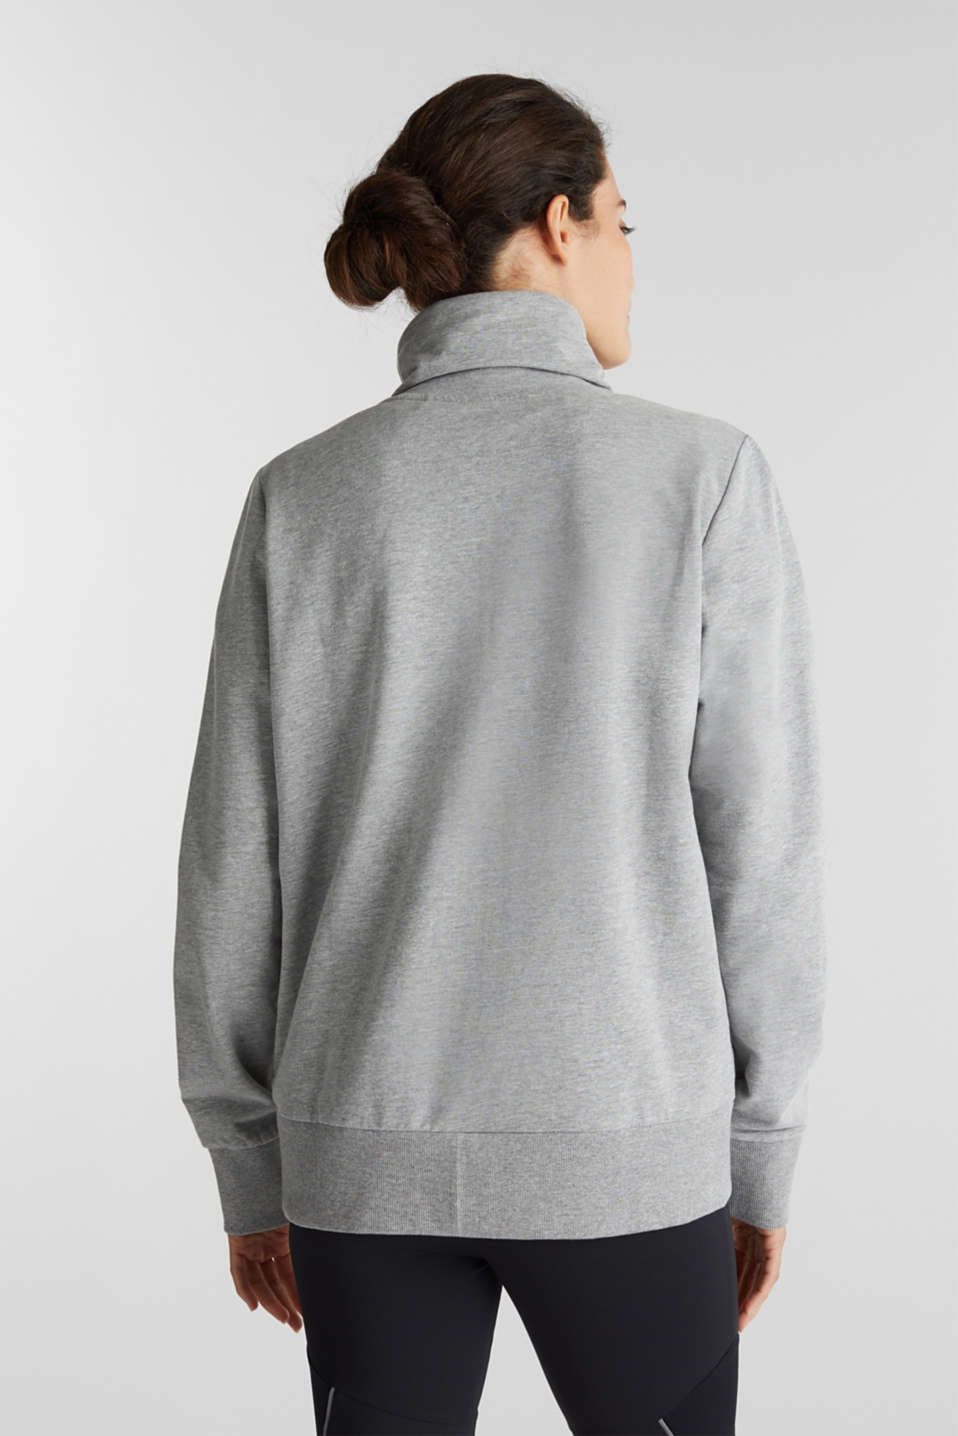 Melange sweatshirt jacket with a drawstring collar, MEDIUM GREY 2, detail image number 3